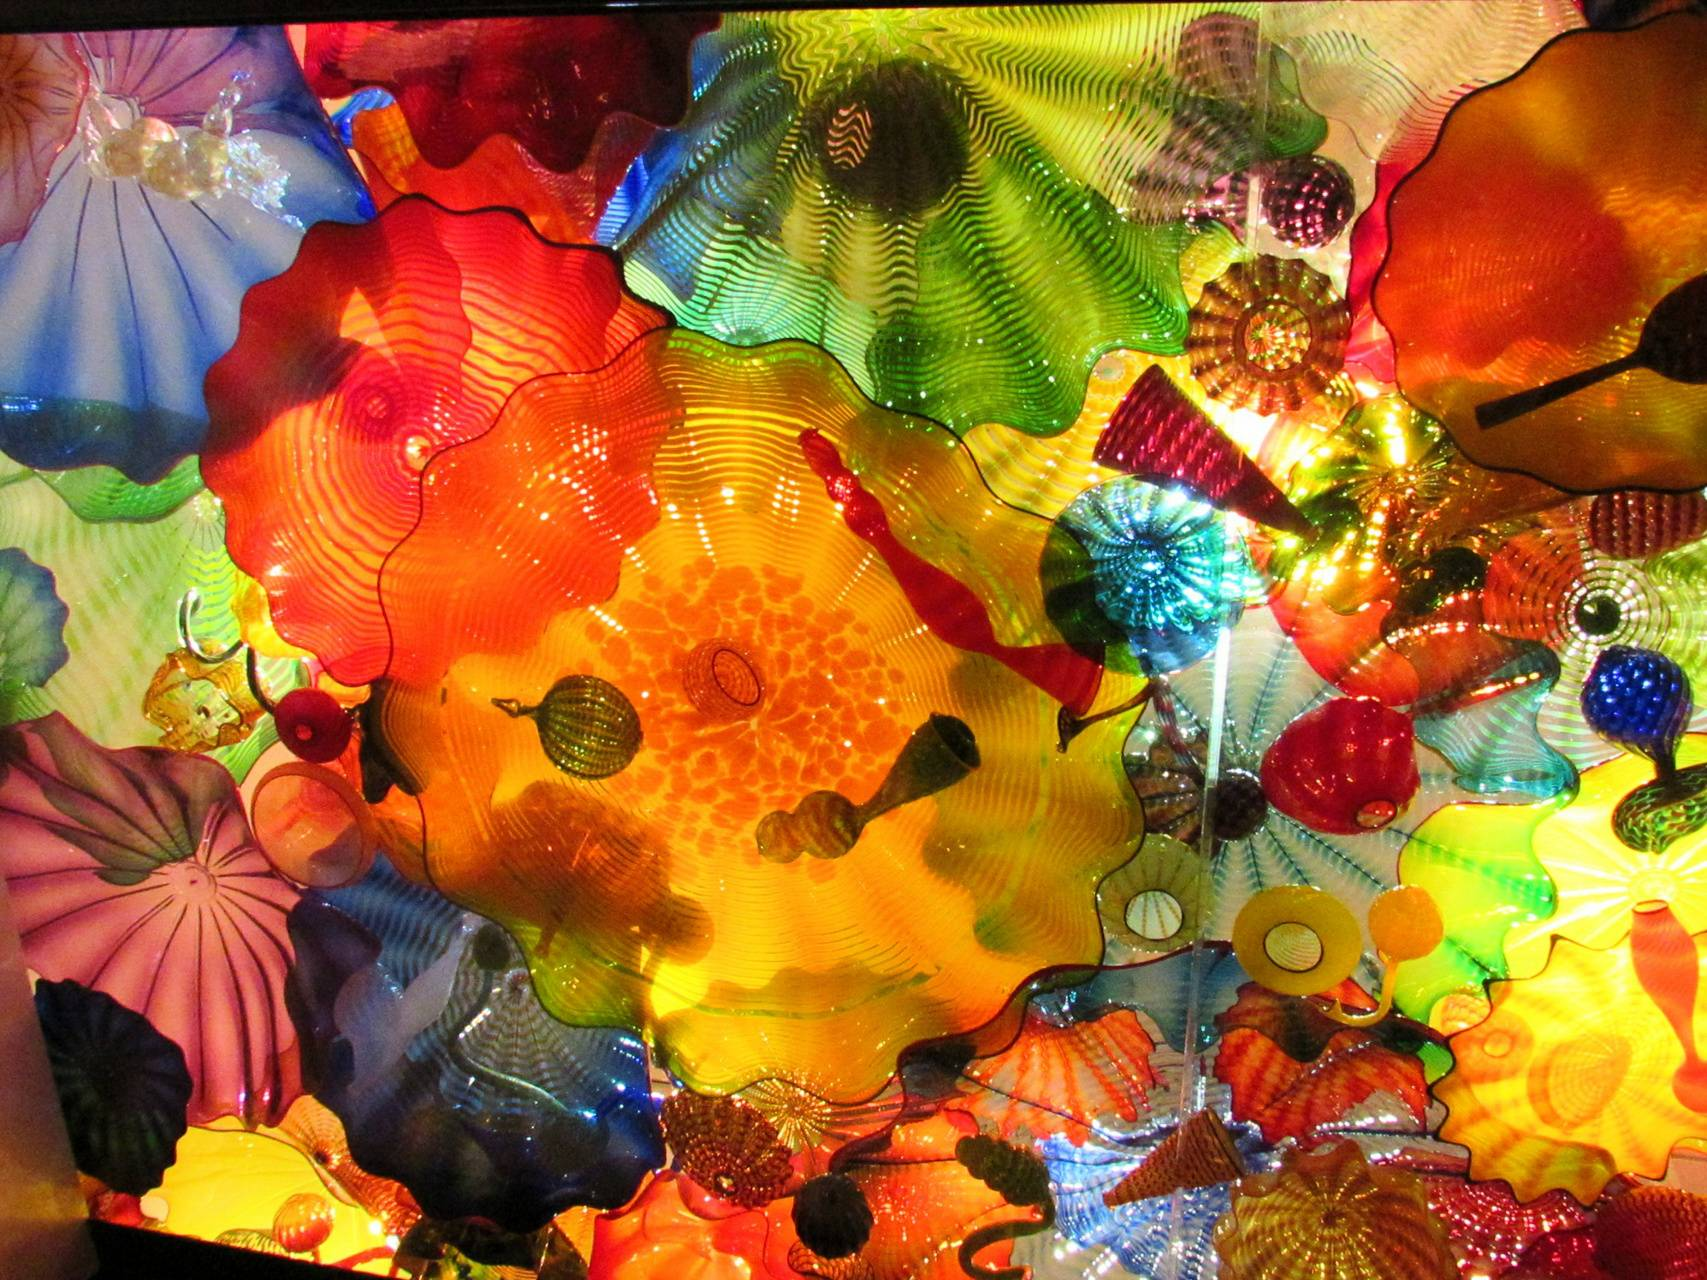 Chihuly pieces 1